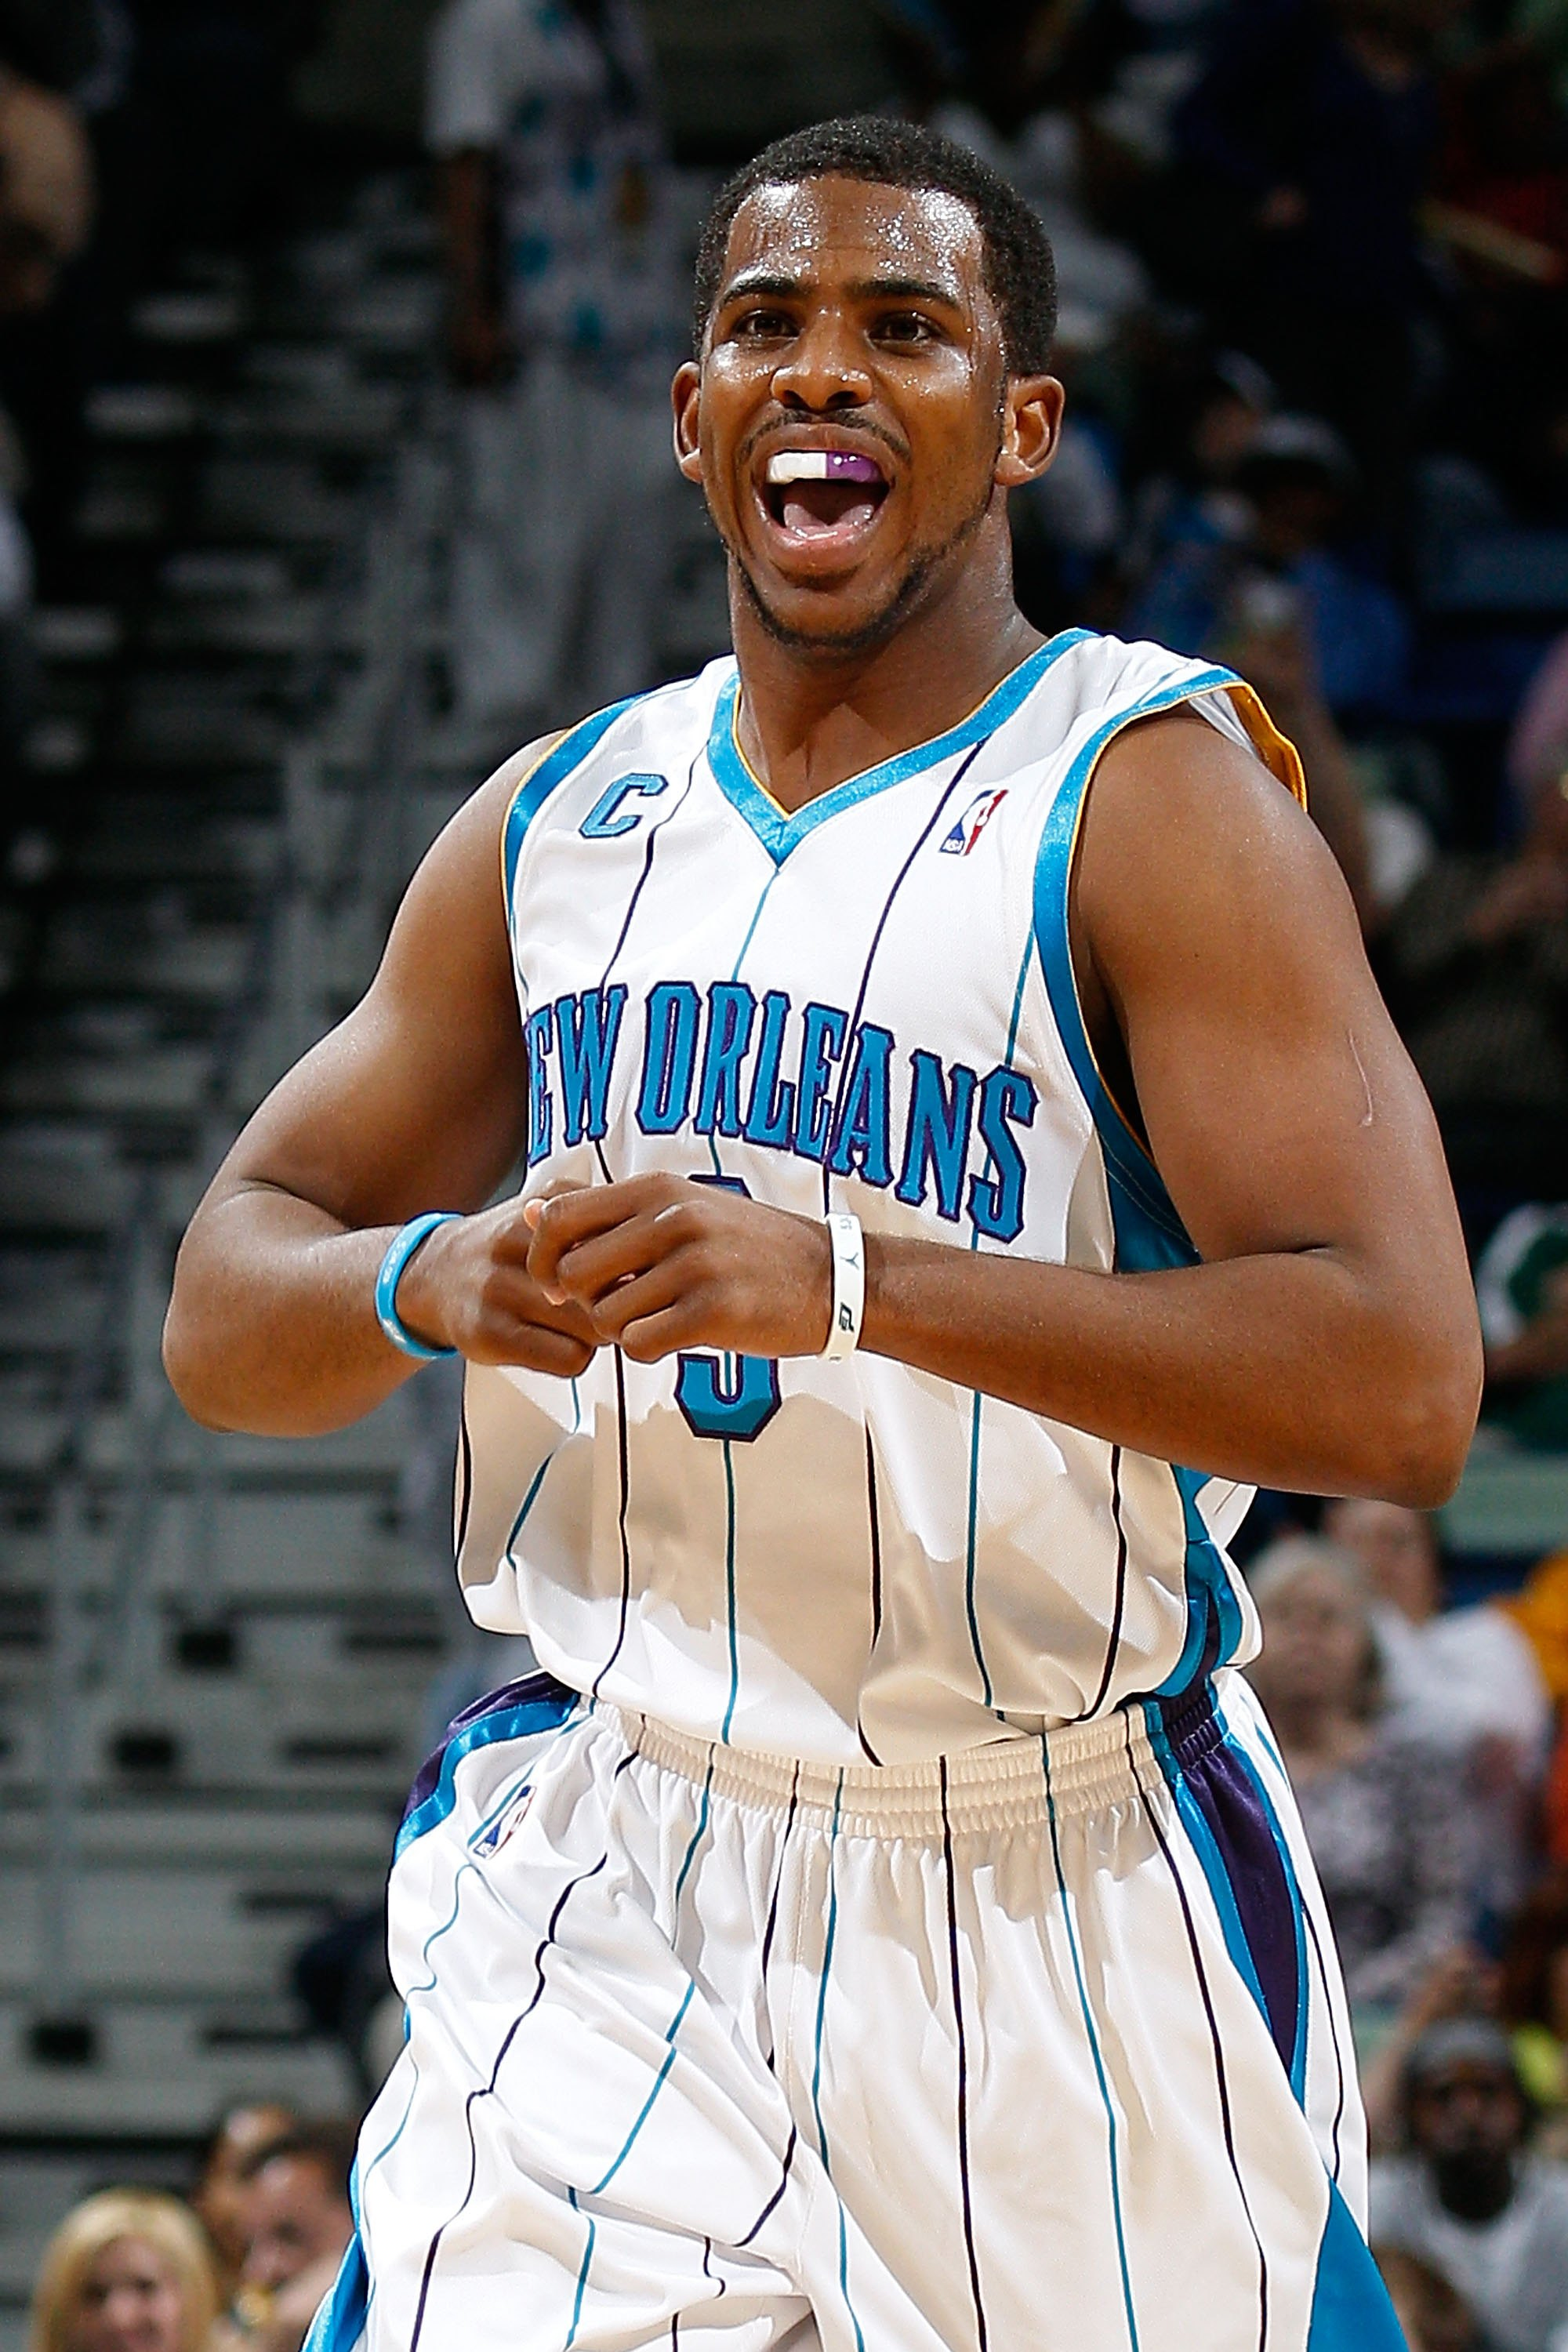 NEW ORLEANS - MARCH 22:  Chris Paul #3 of the New Orleans Hornets during the game against the Dallas Mavericks at the New Orleans Arena on March 22, 2010 in New Orleans, Louisiana.  NOTE TO USER: User expressly acknowledges and agrees that, by downloading